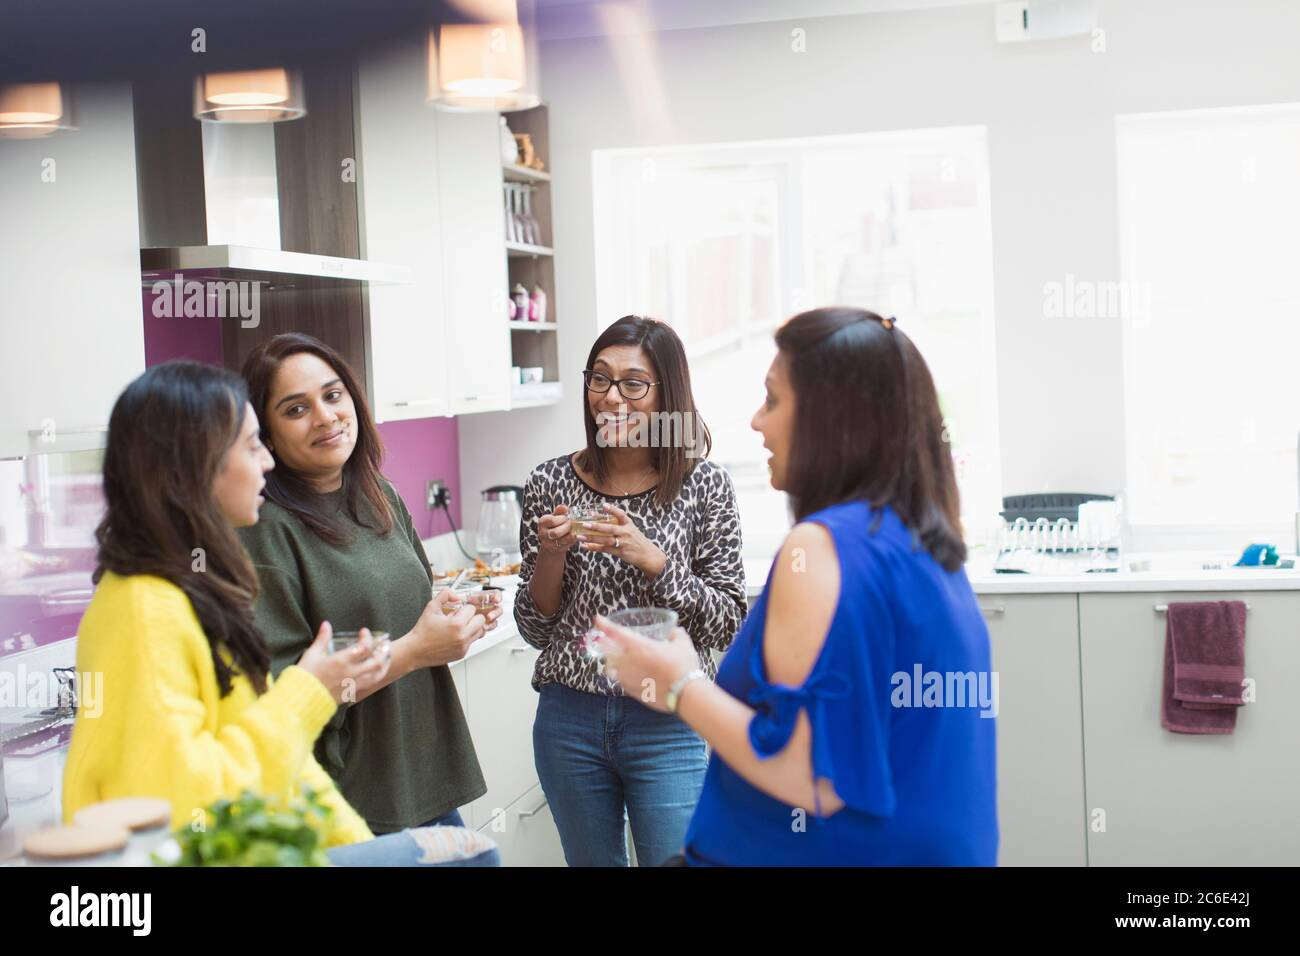 Indian women talking and drinking tea in kitchen Stock Photo